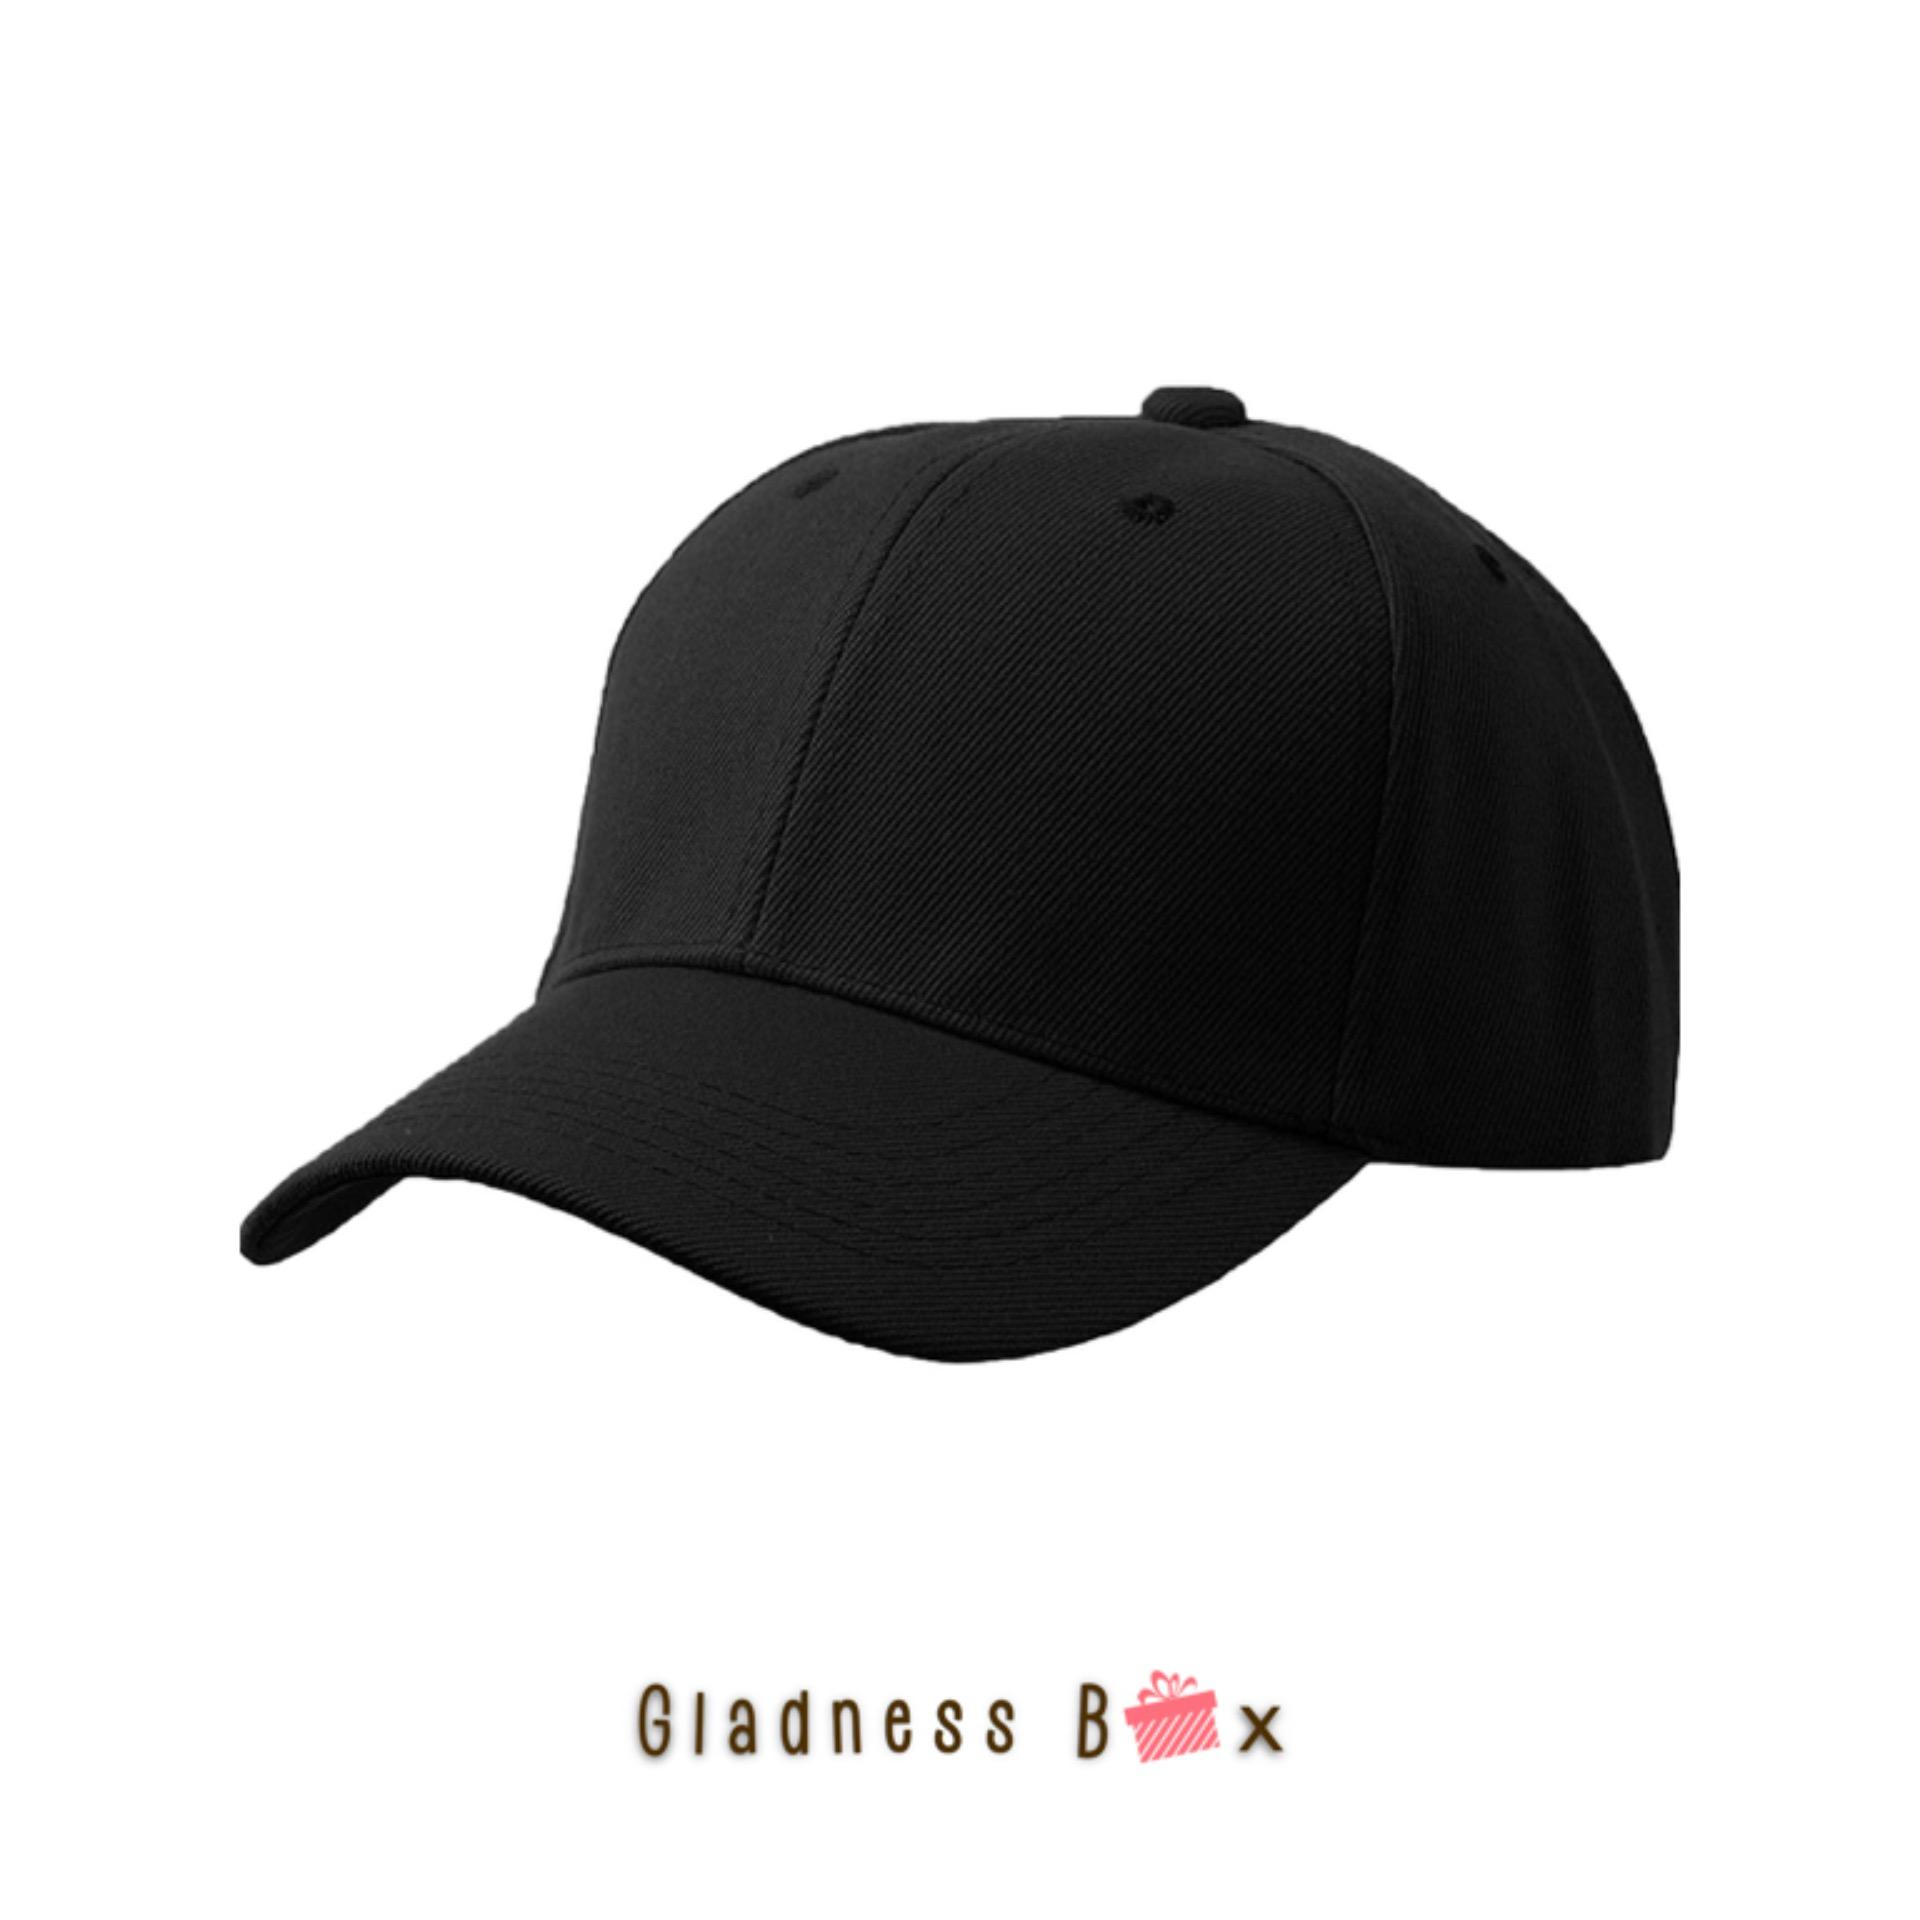 0dd56bb1646d9 Gladness Box High Quality Plain Baseball Cap for Men Women Unisex